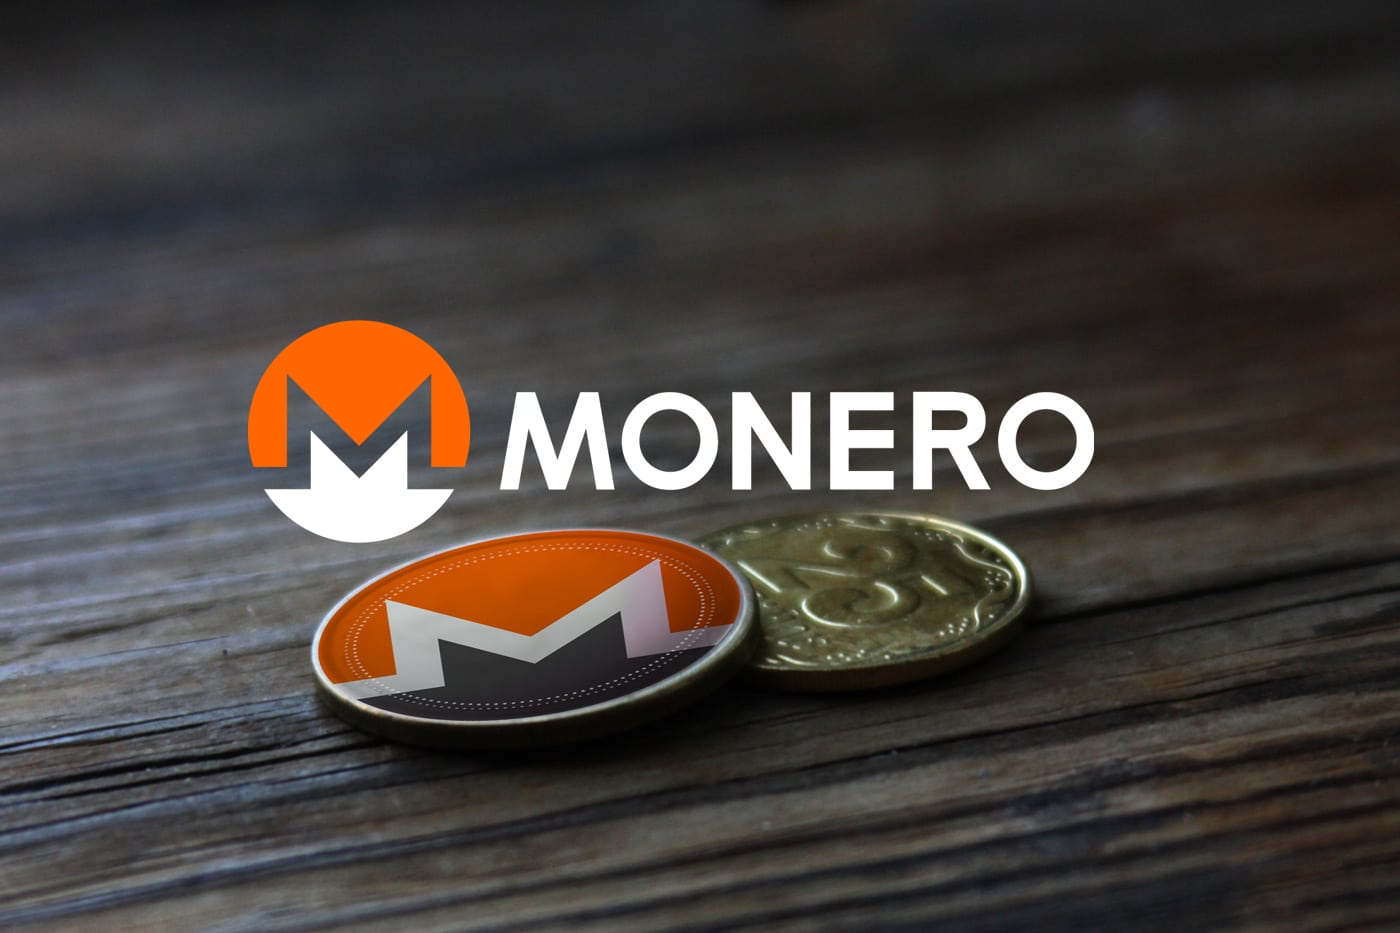 mondero guide - Three Cryptos That Will Survive A Potential Altcoin Apocalypse: Stellar Lumens, Monero, And EOS